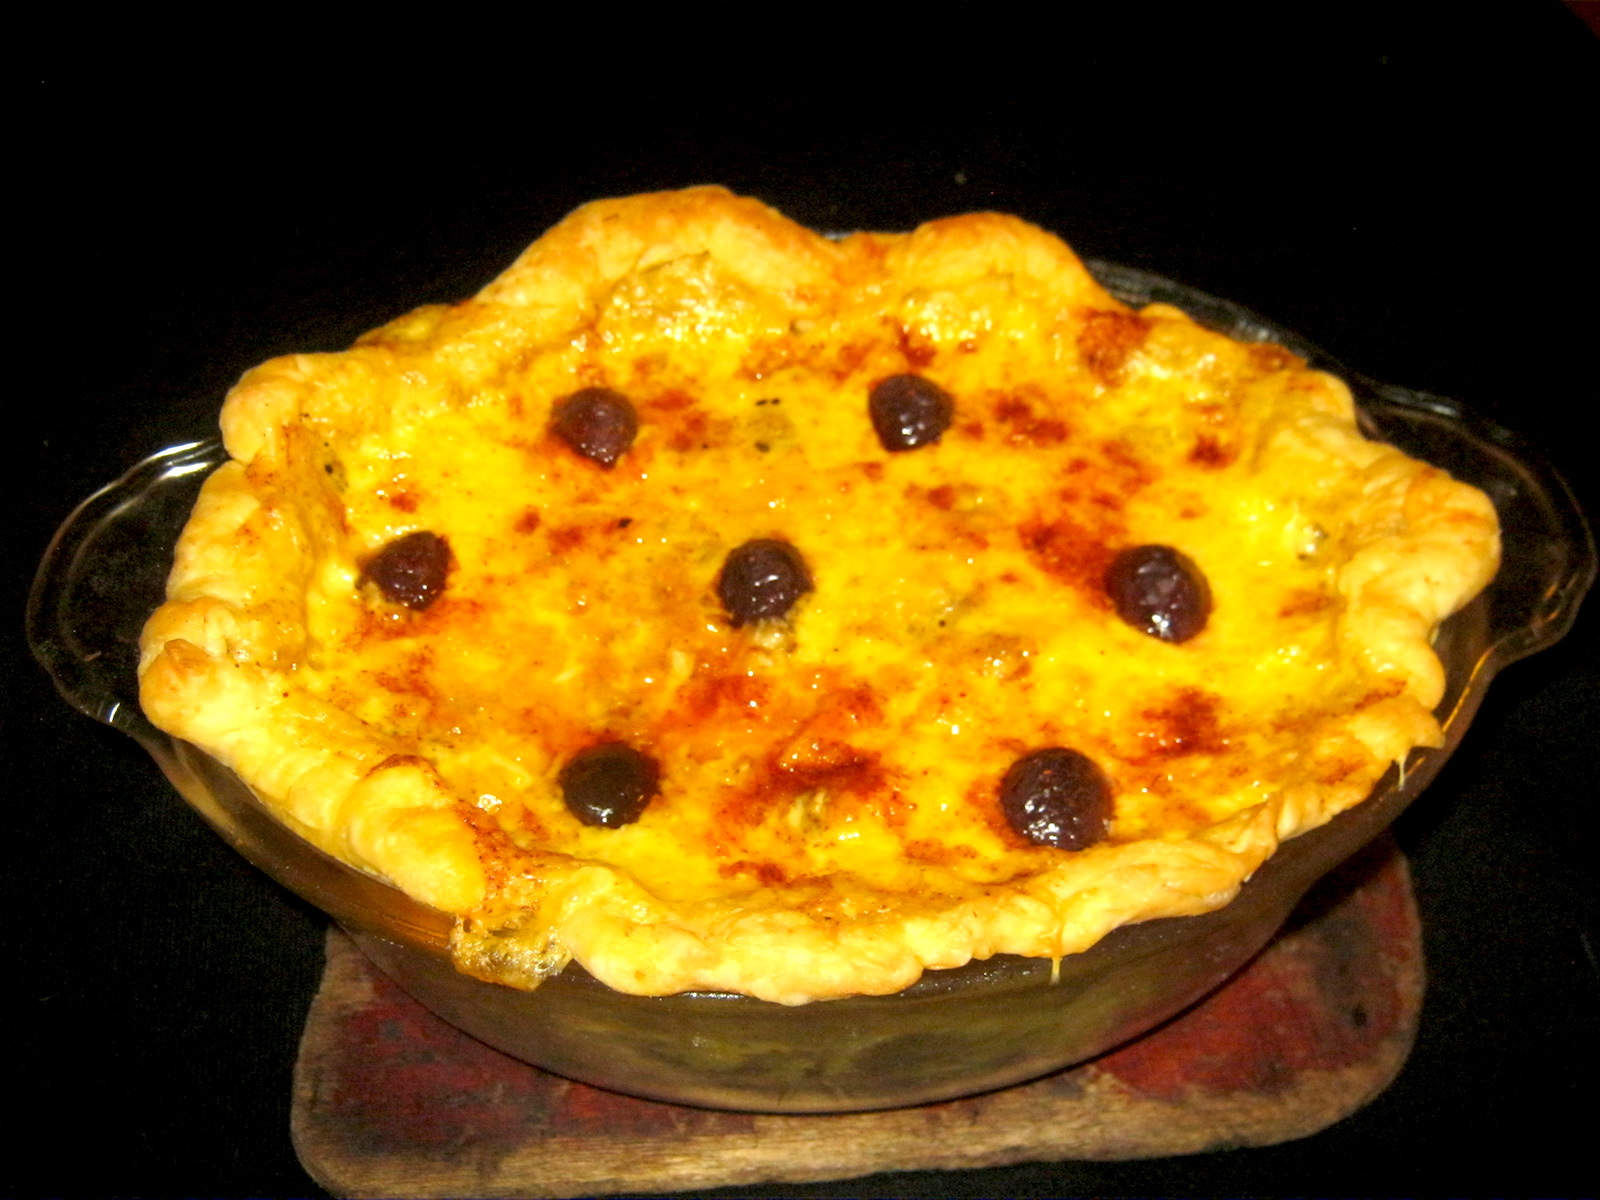 Baked chicken pot pie garnished with olives in casserole dish